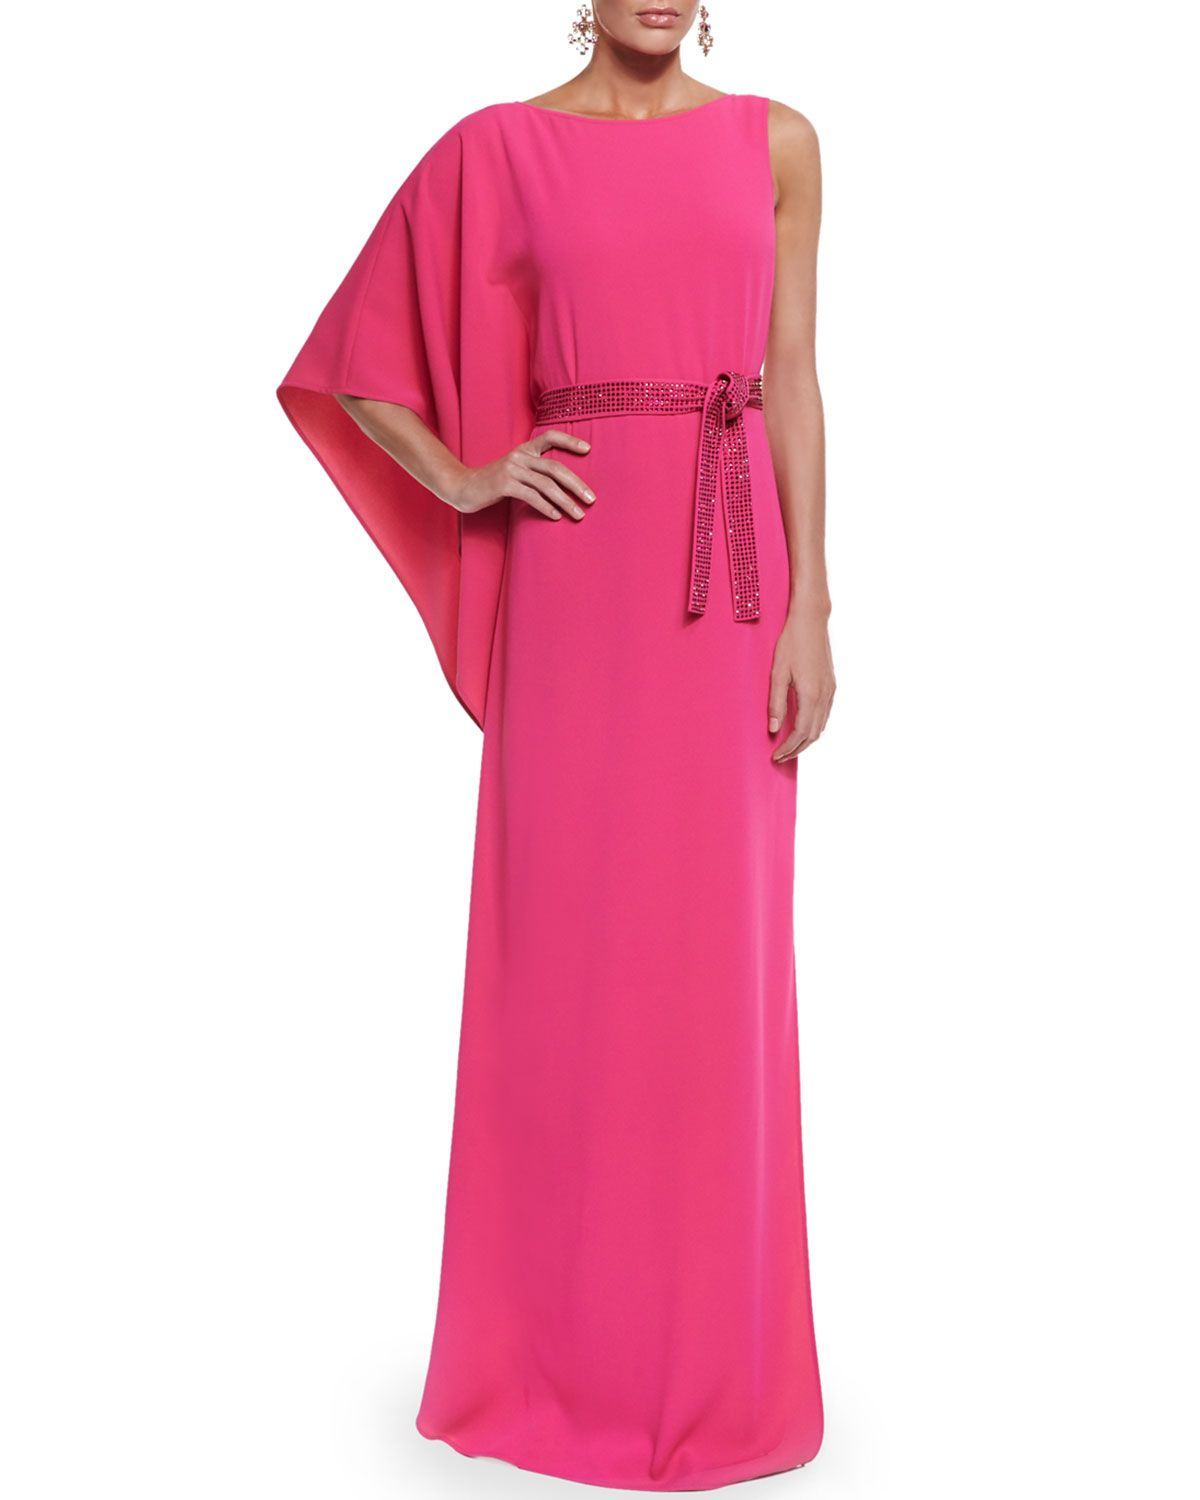 Classic Cady Gown w/ Sequined Belt, Cerise, Women's, Size: 10 - St. John Collection